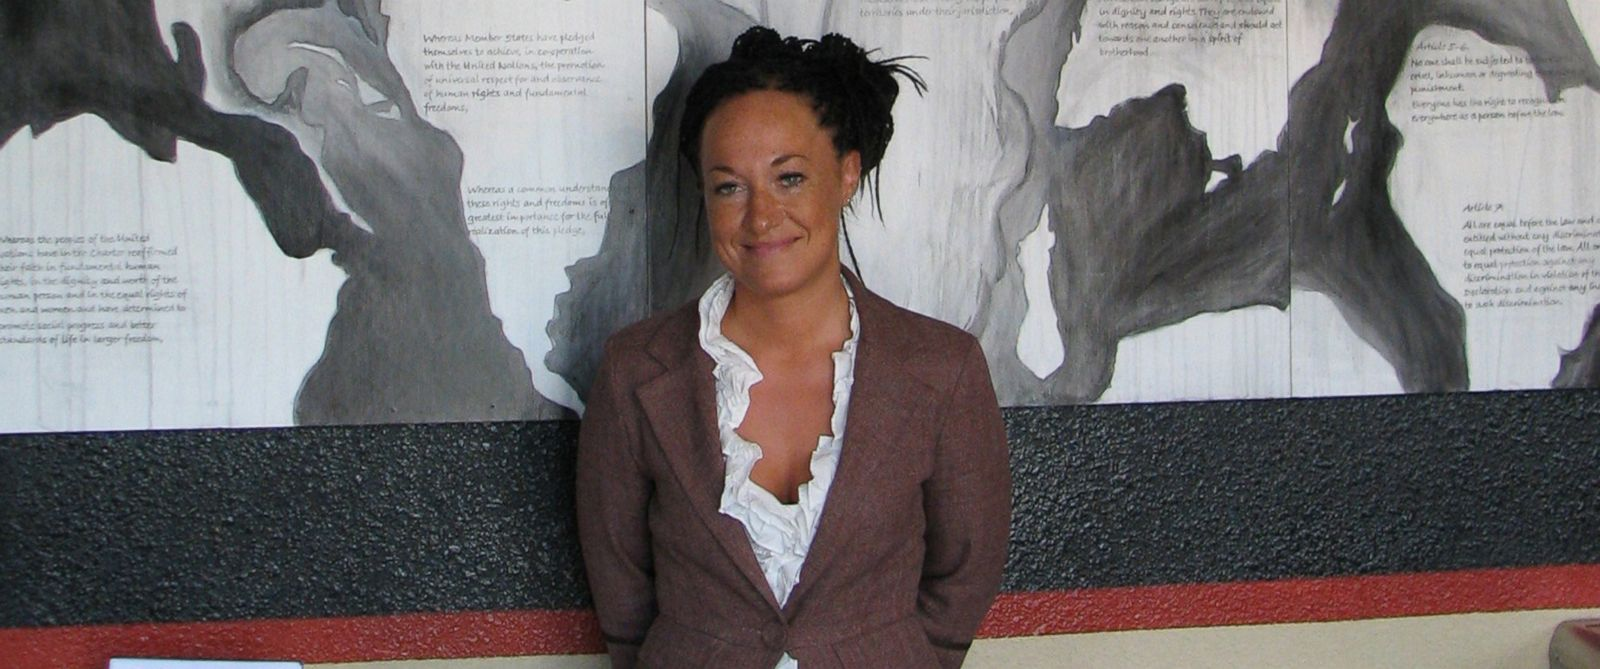 PHOTO: In this July 24, 2009, file photo, Rachel Dolezal, a leader of the Human Rights Education Institute, stands in front of a mural she painted at the institutes offices in Coeur dAlene, Idaho.